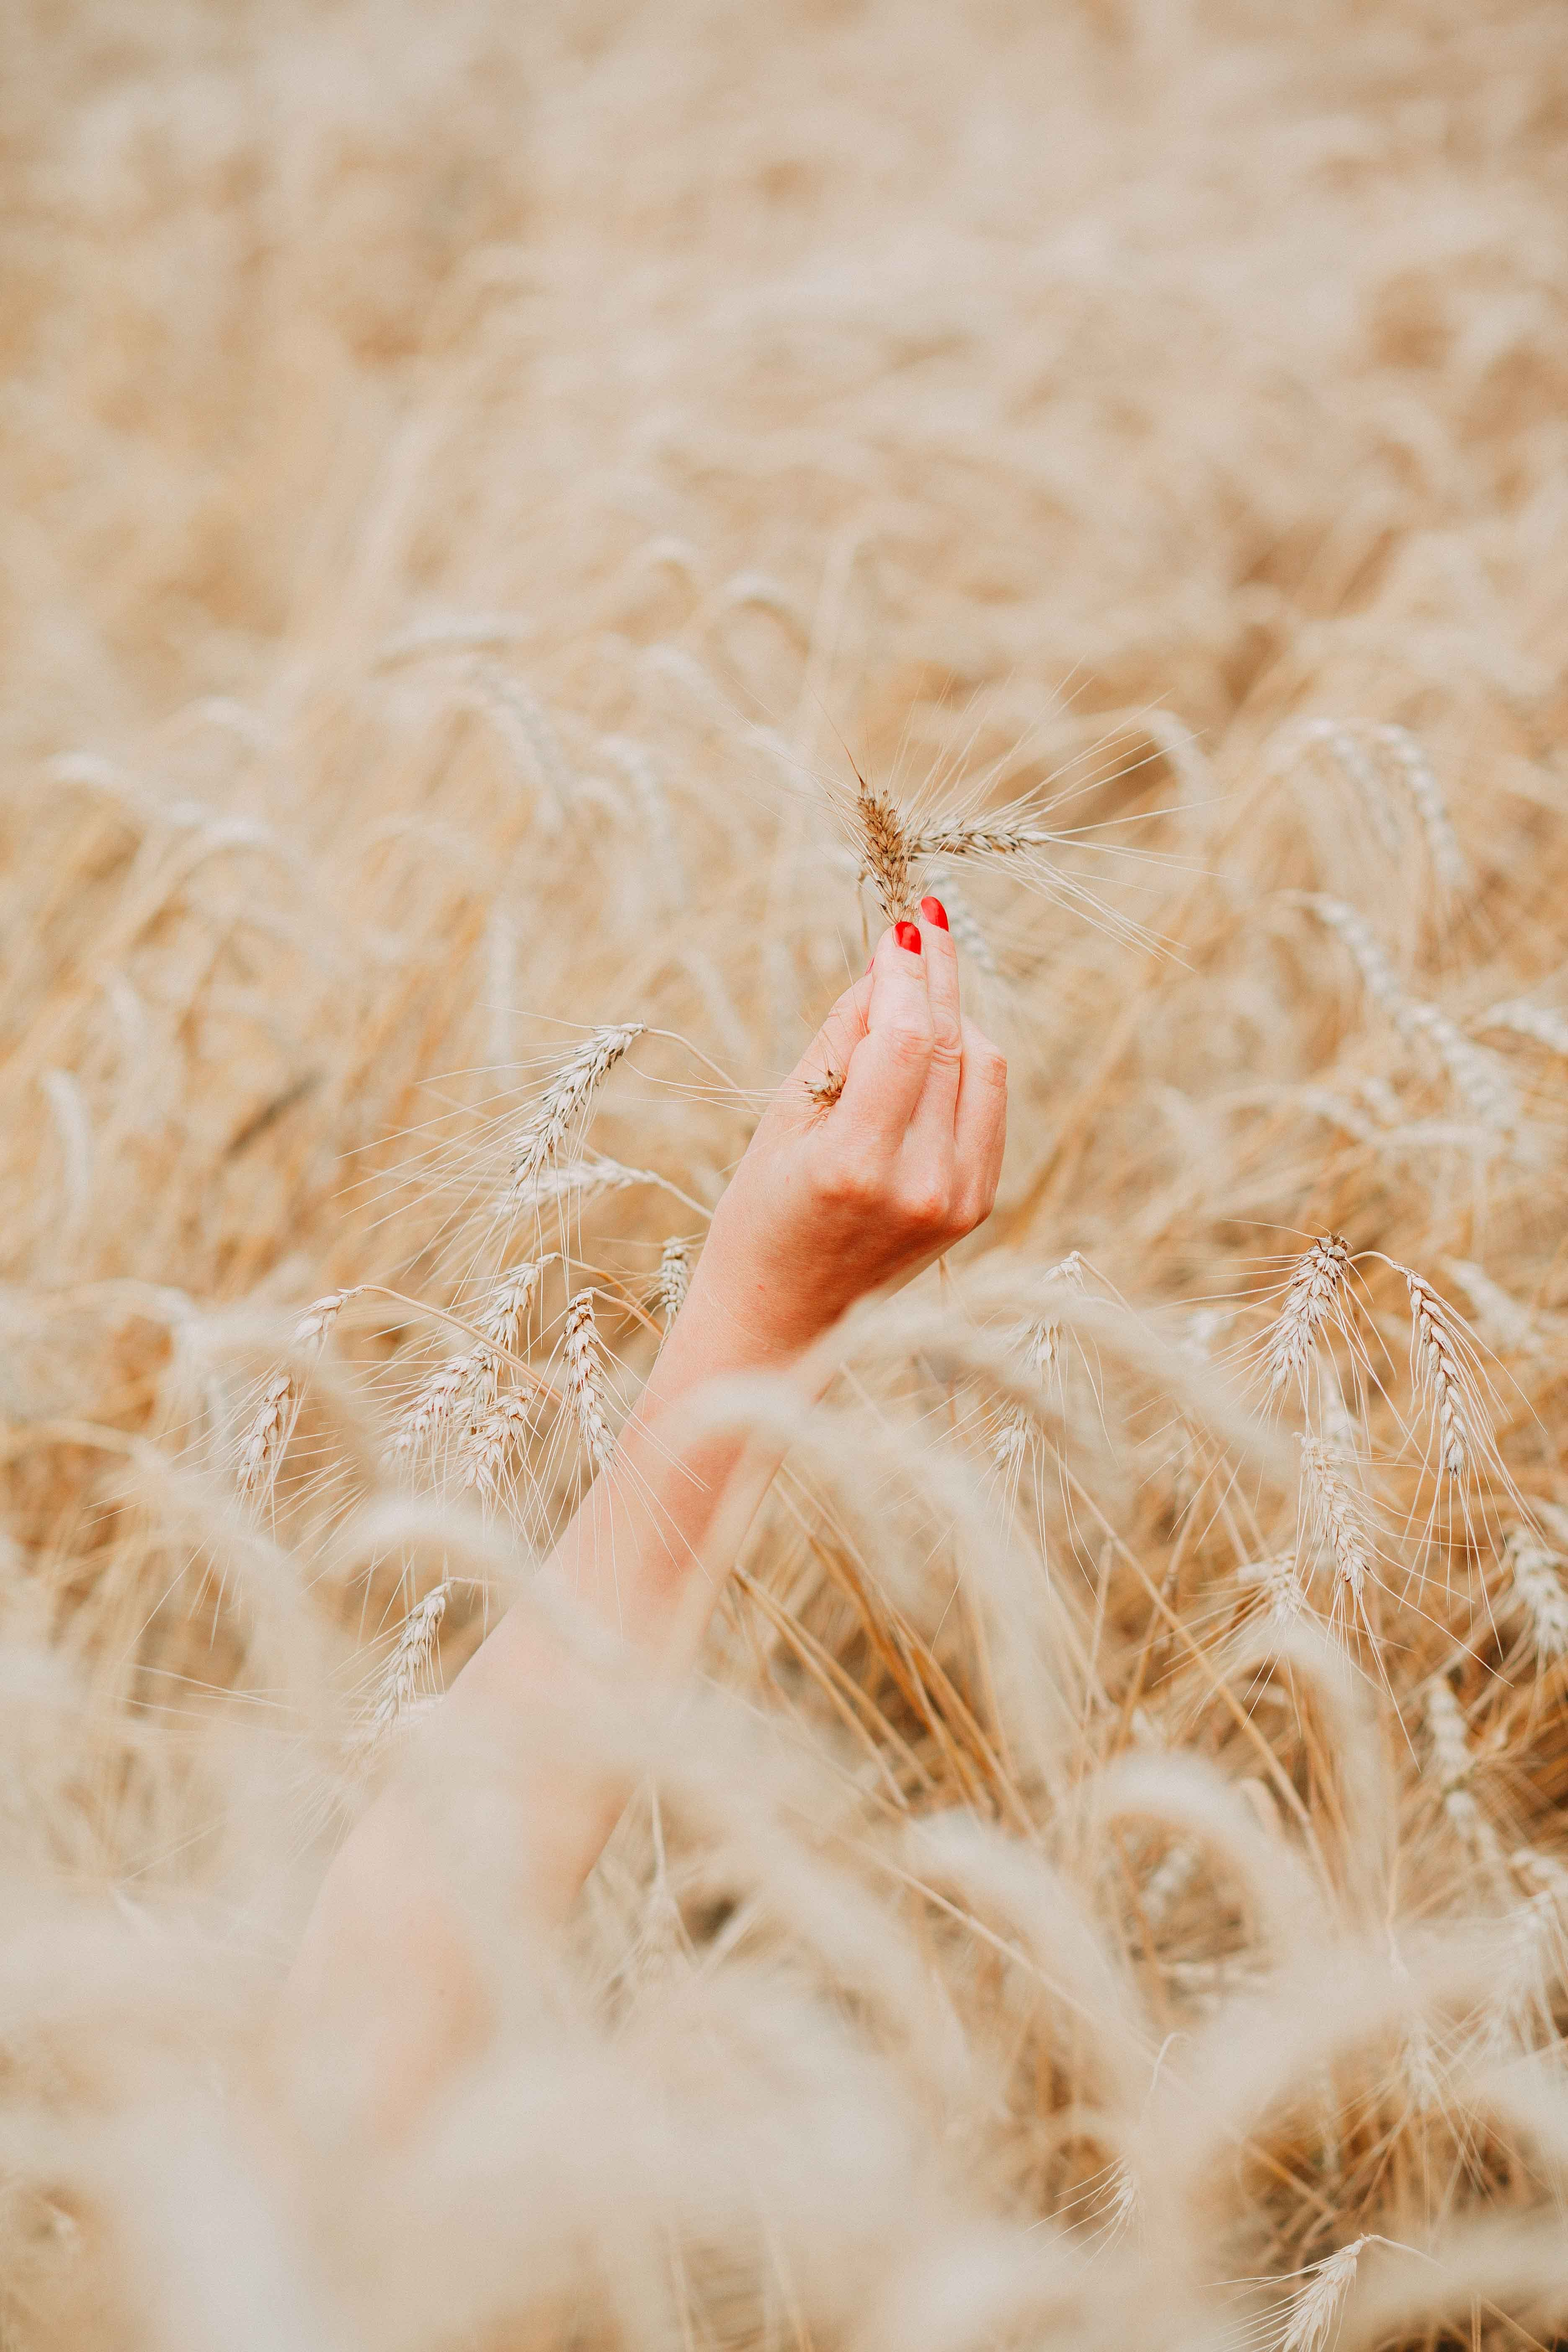 Person's Right Hand Holding Brown Wheat Plant